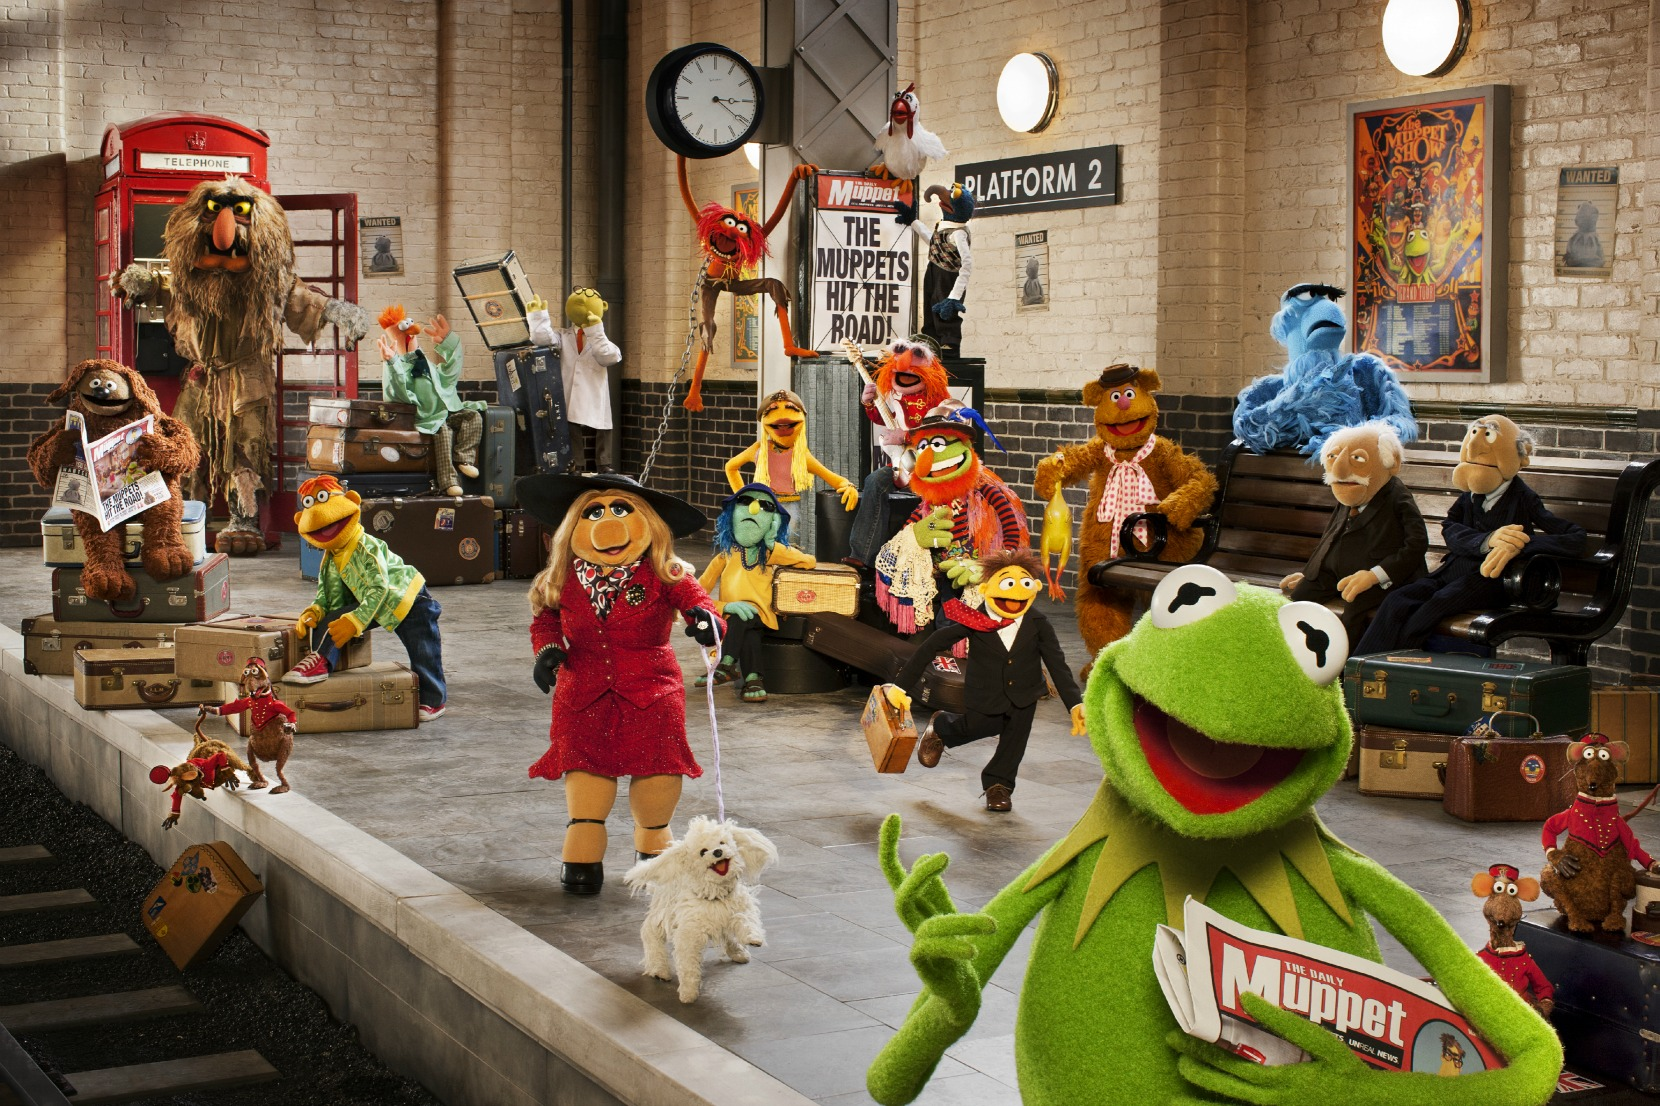 The Muppets...Again!-Movie-Muppets-Tina Fey-Kermit the Frog-Miss Piggie